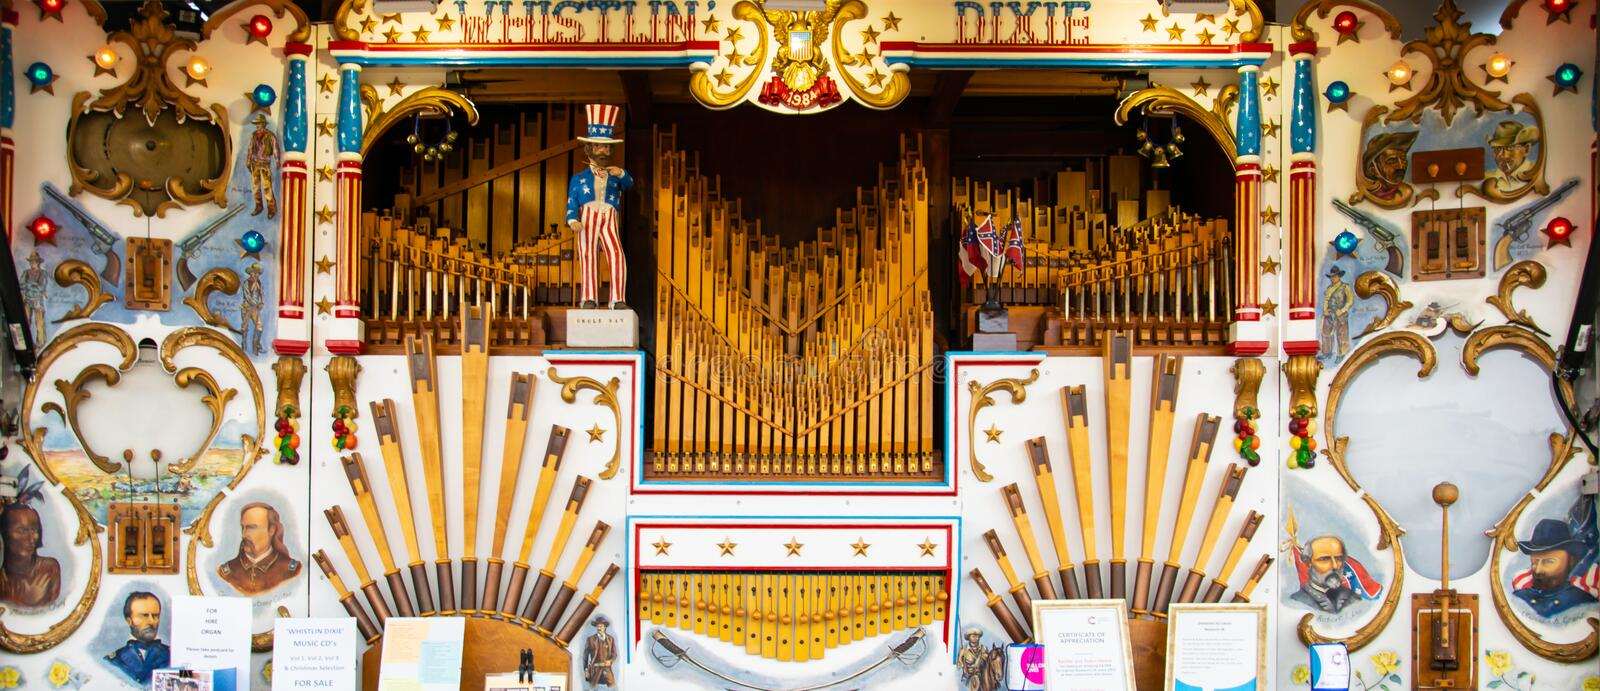 Organe de Whistlin Dikie photos stock